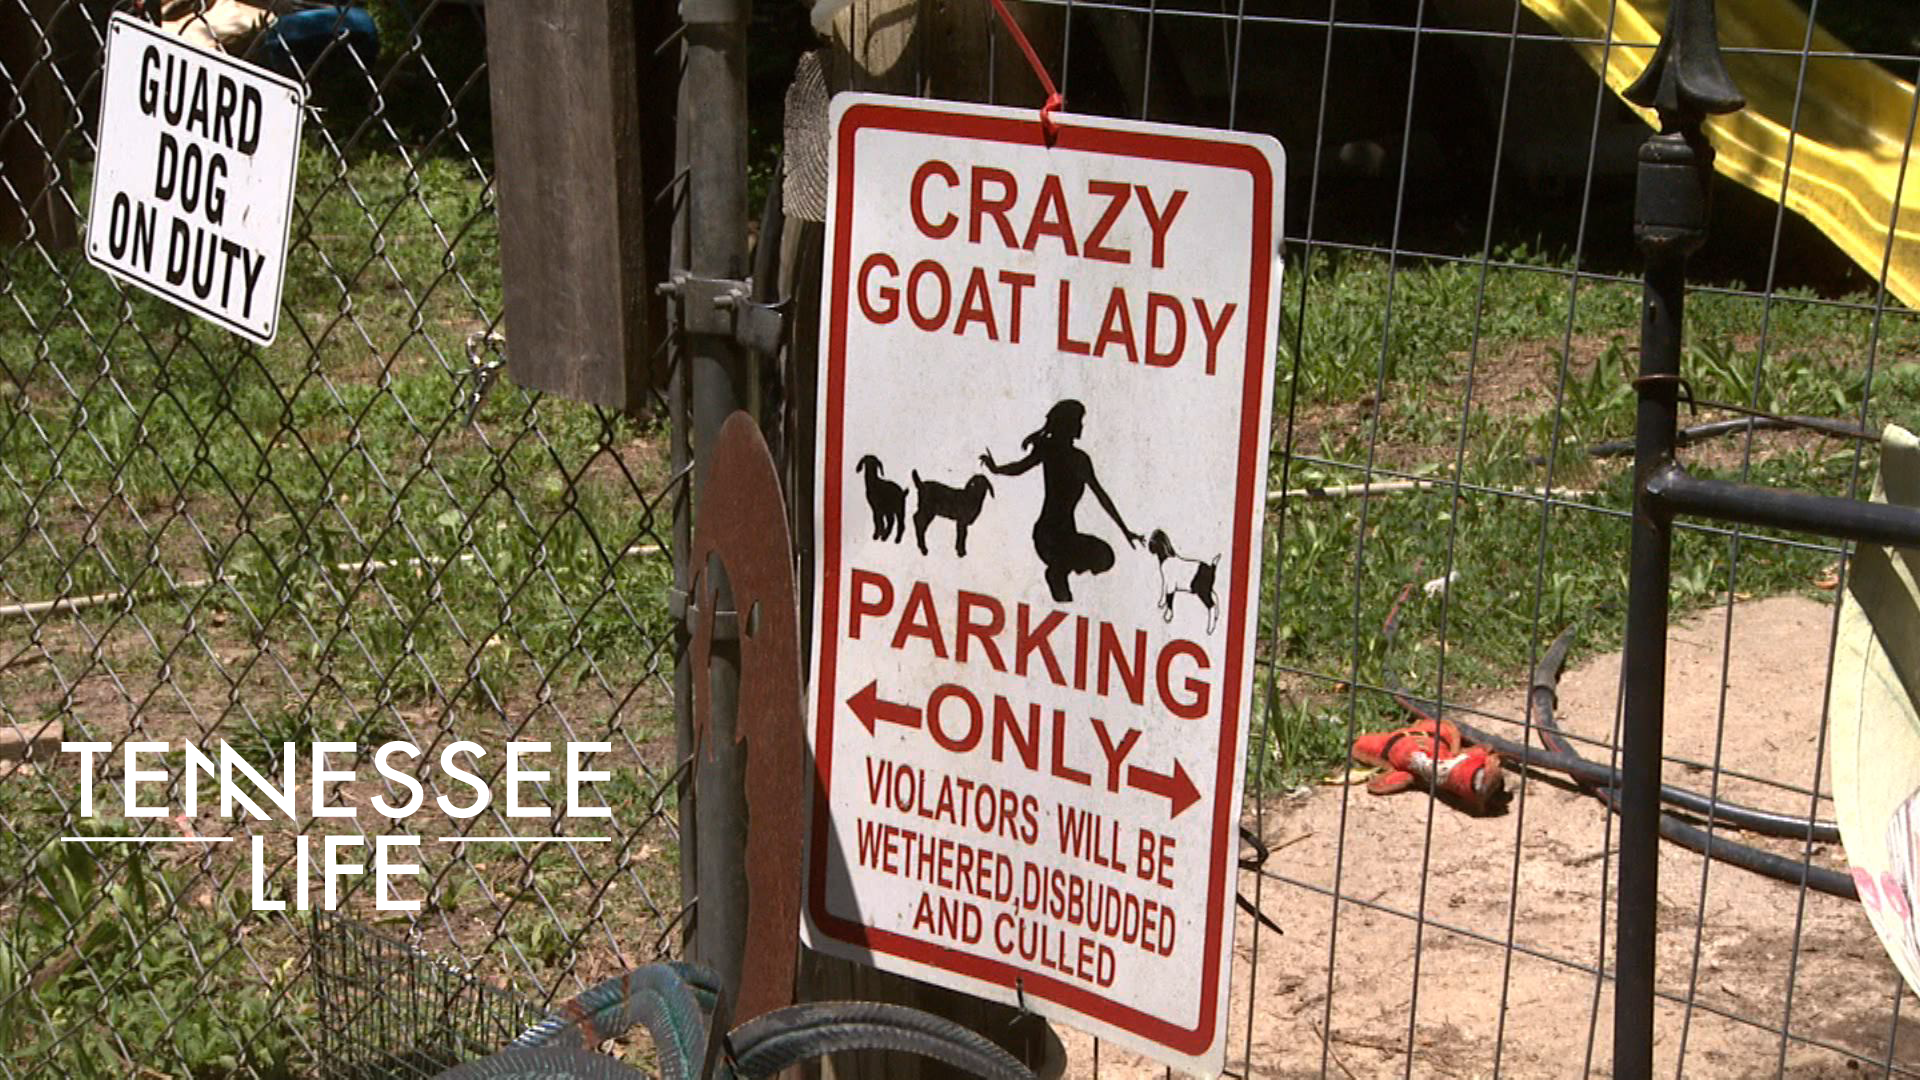 Tennessee Life - 604 - Get Your Goat!